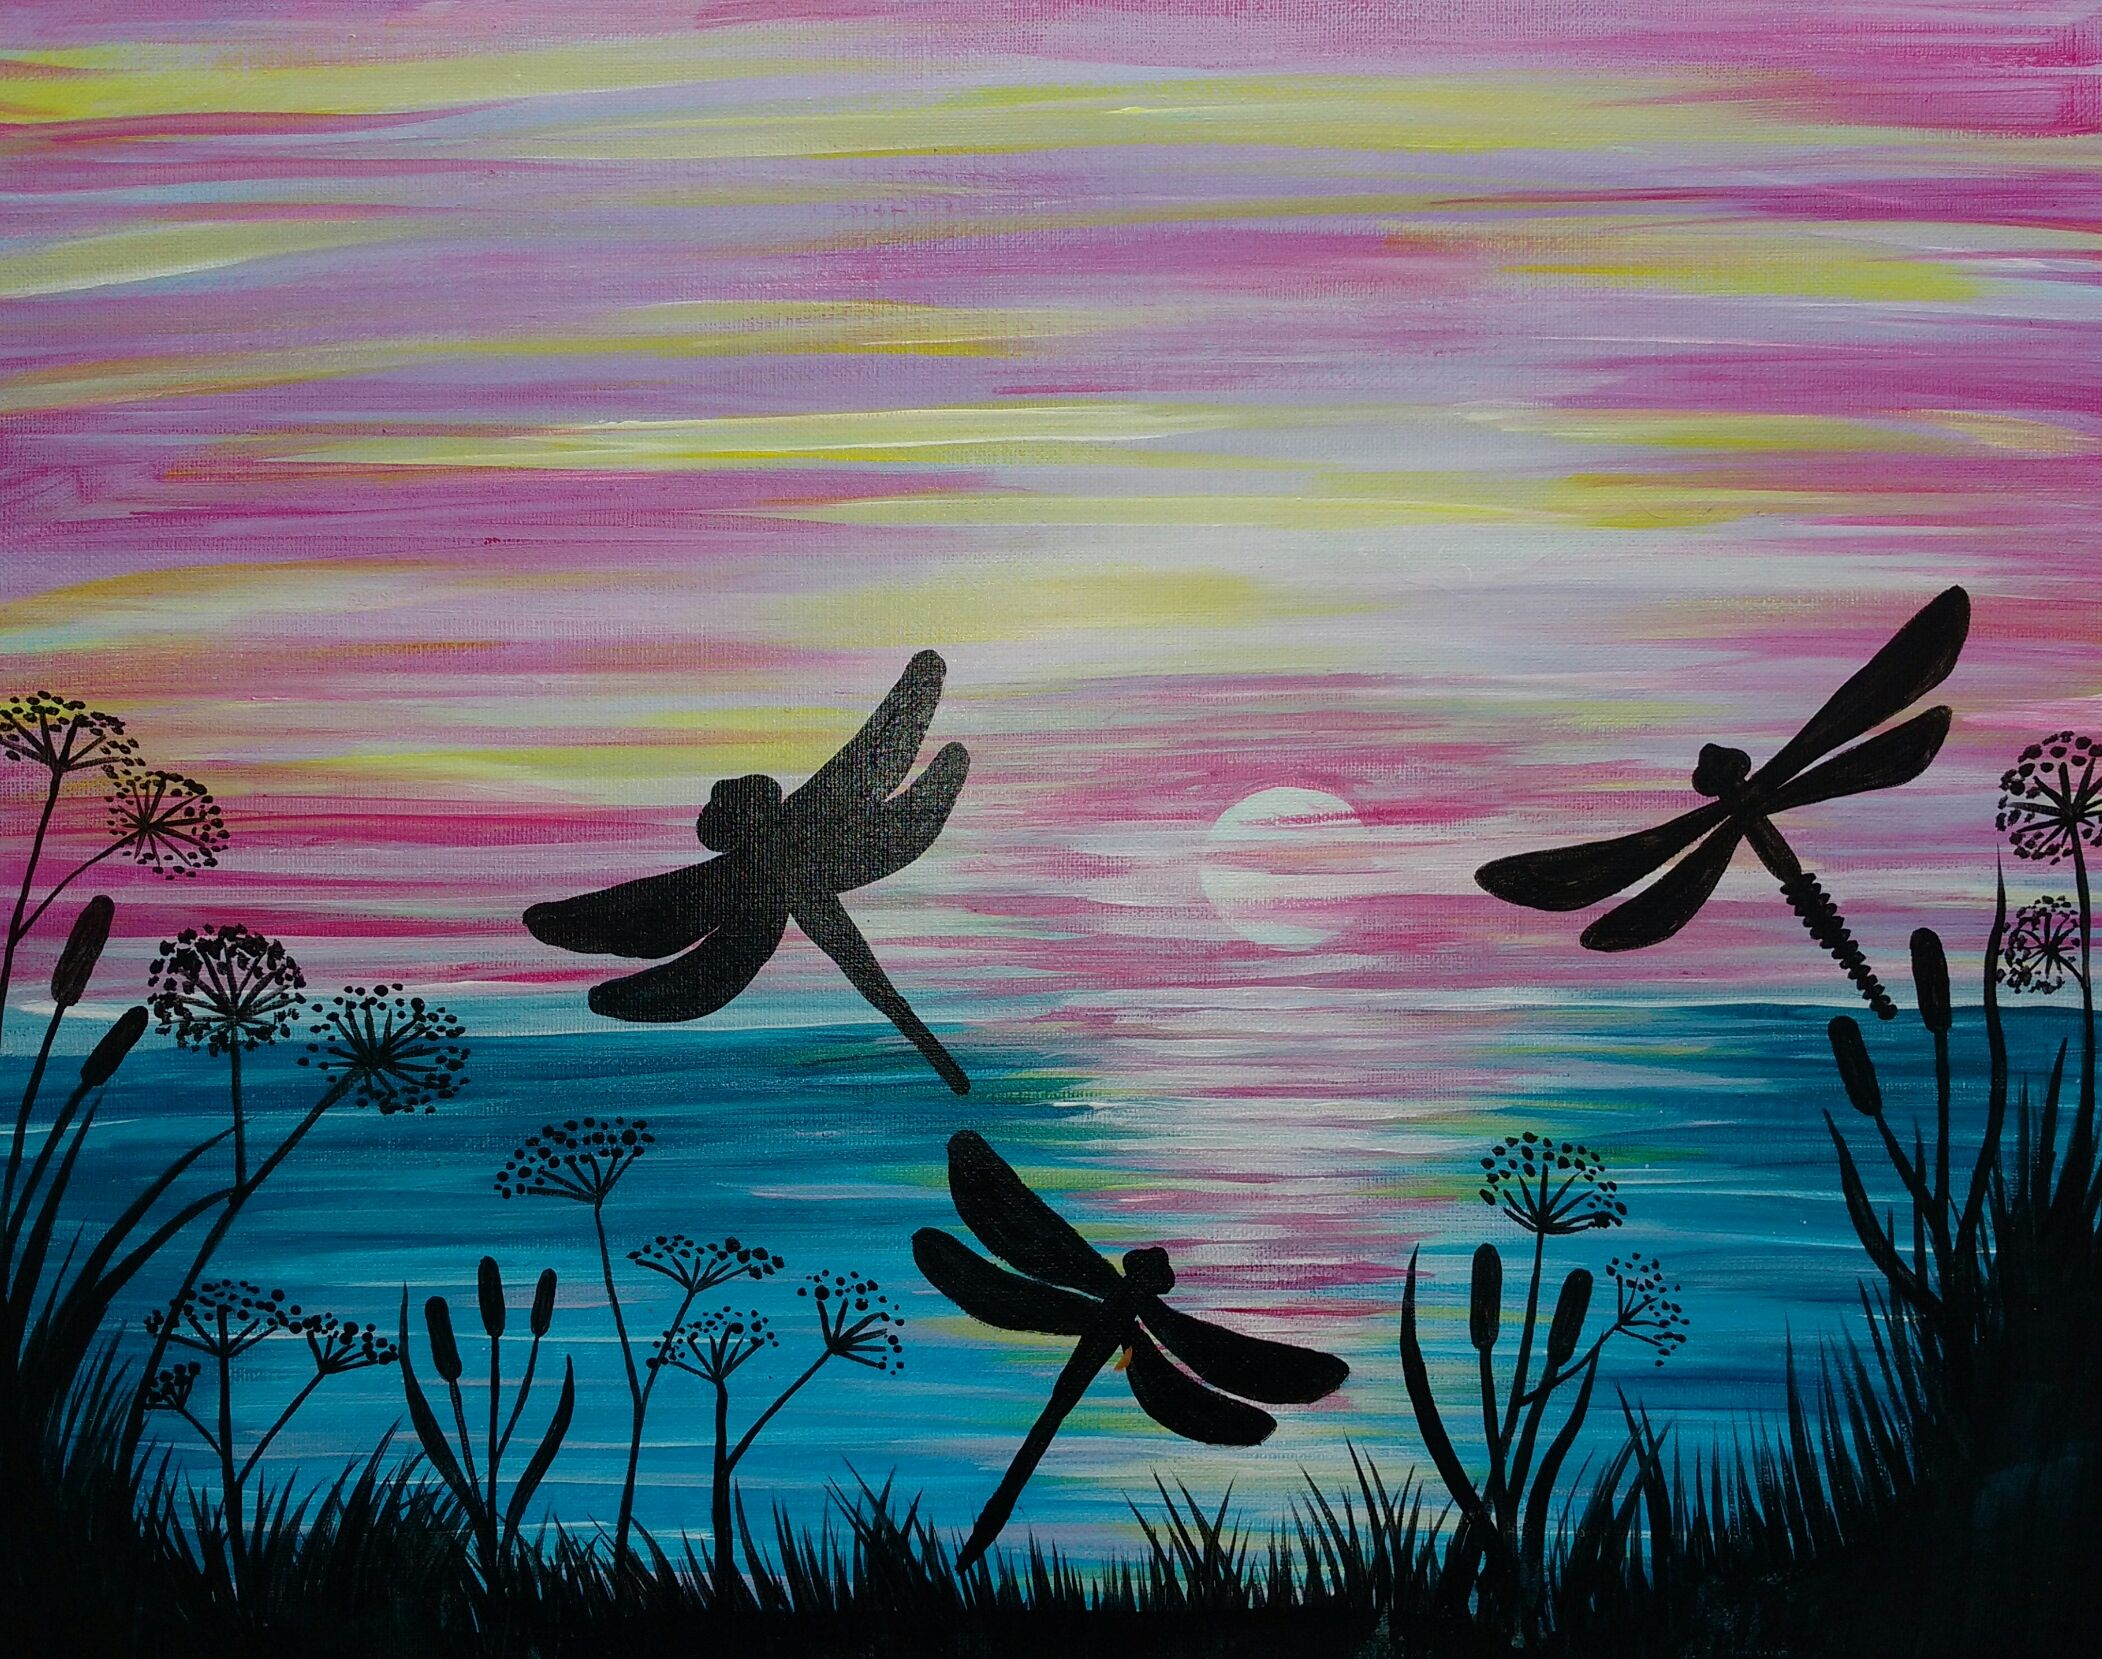 Dragonflies and sunset over the lake, beginner painting idea.